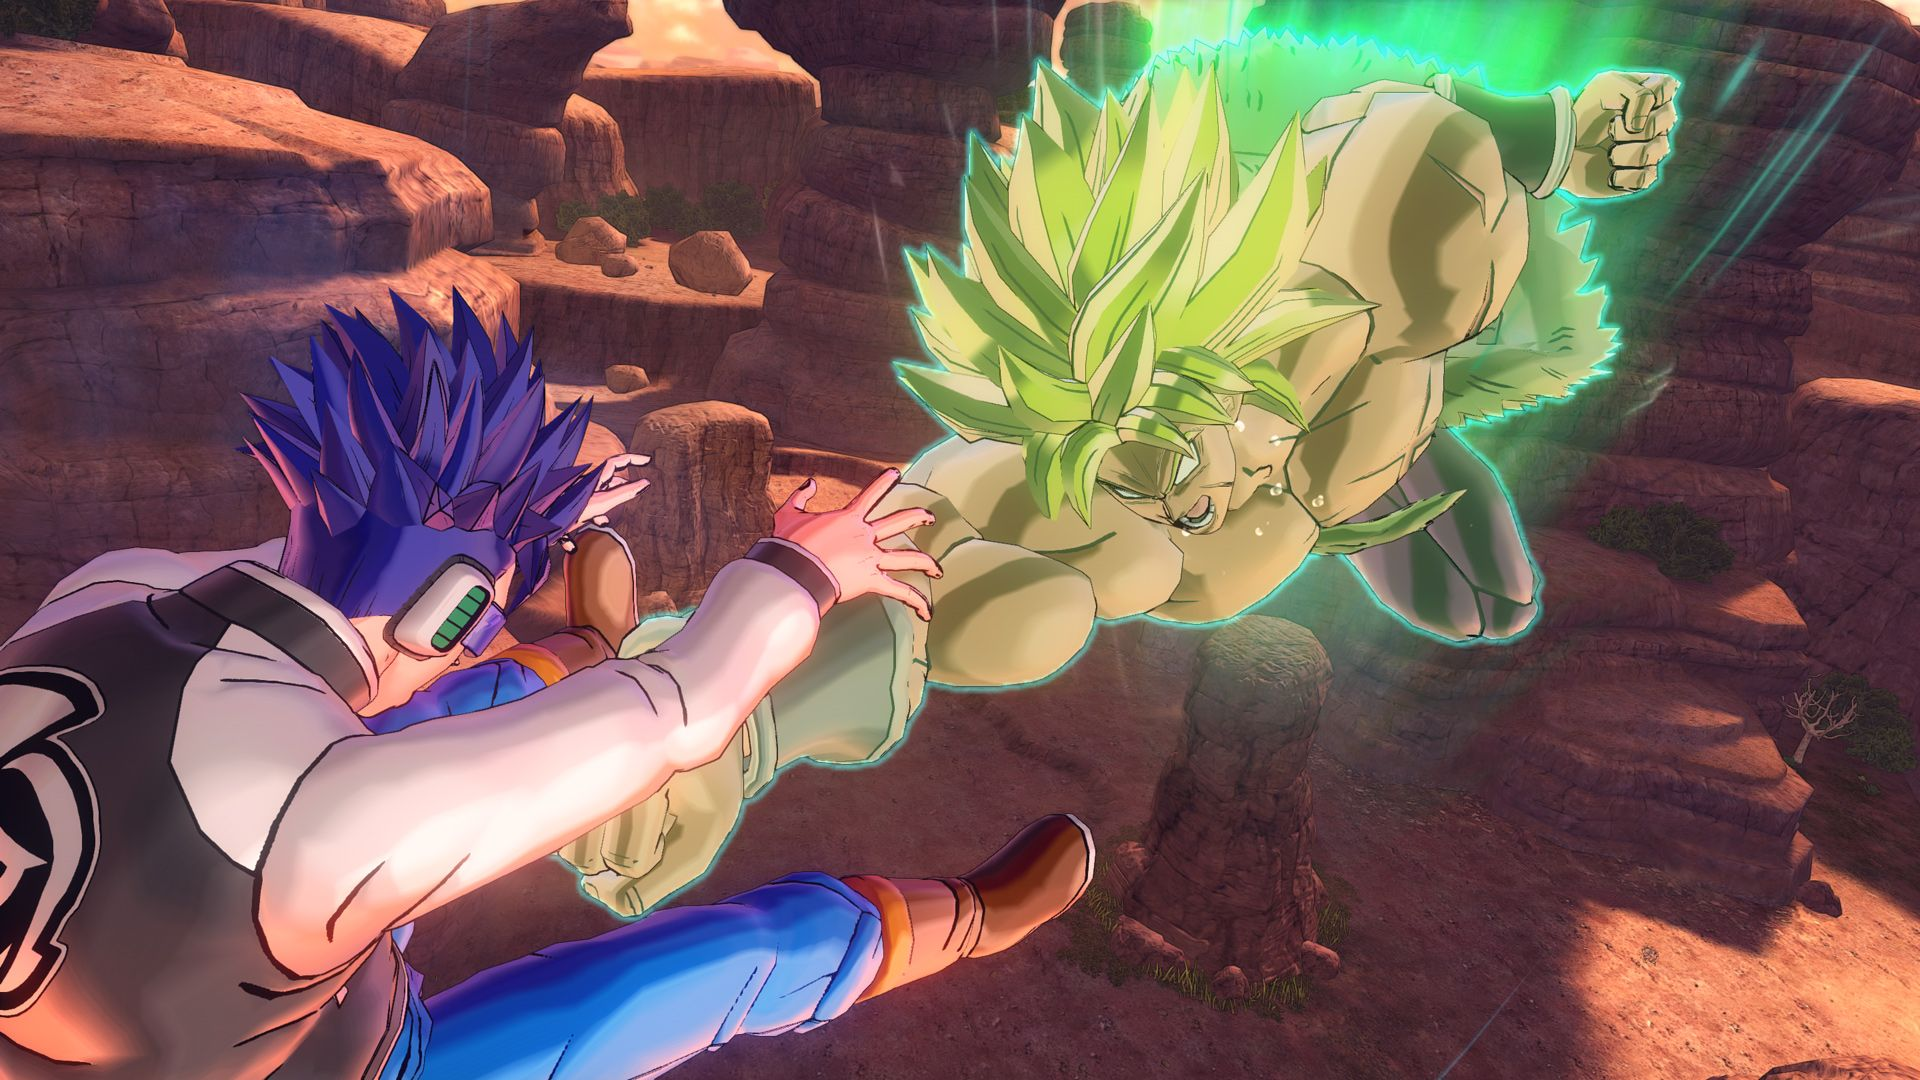 DRAGON BALL XENOVERSE 2 Extra Pack 4 features super-powered